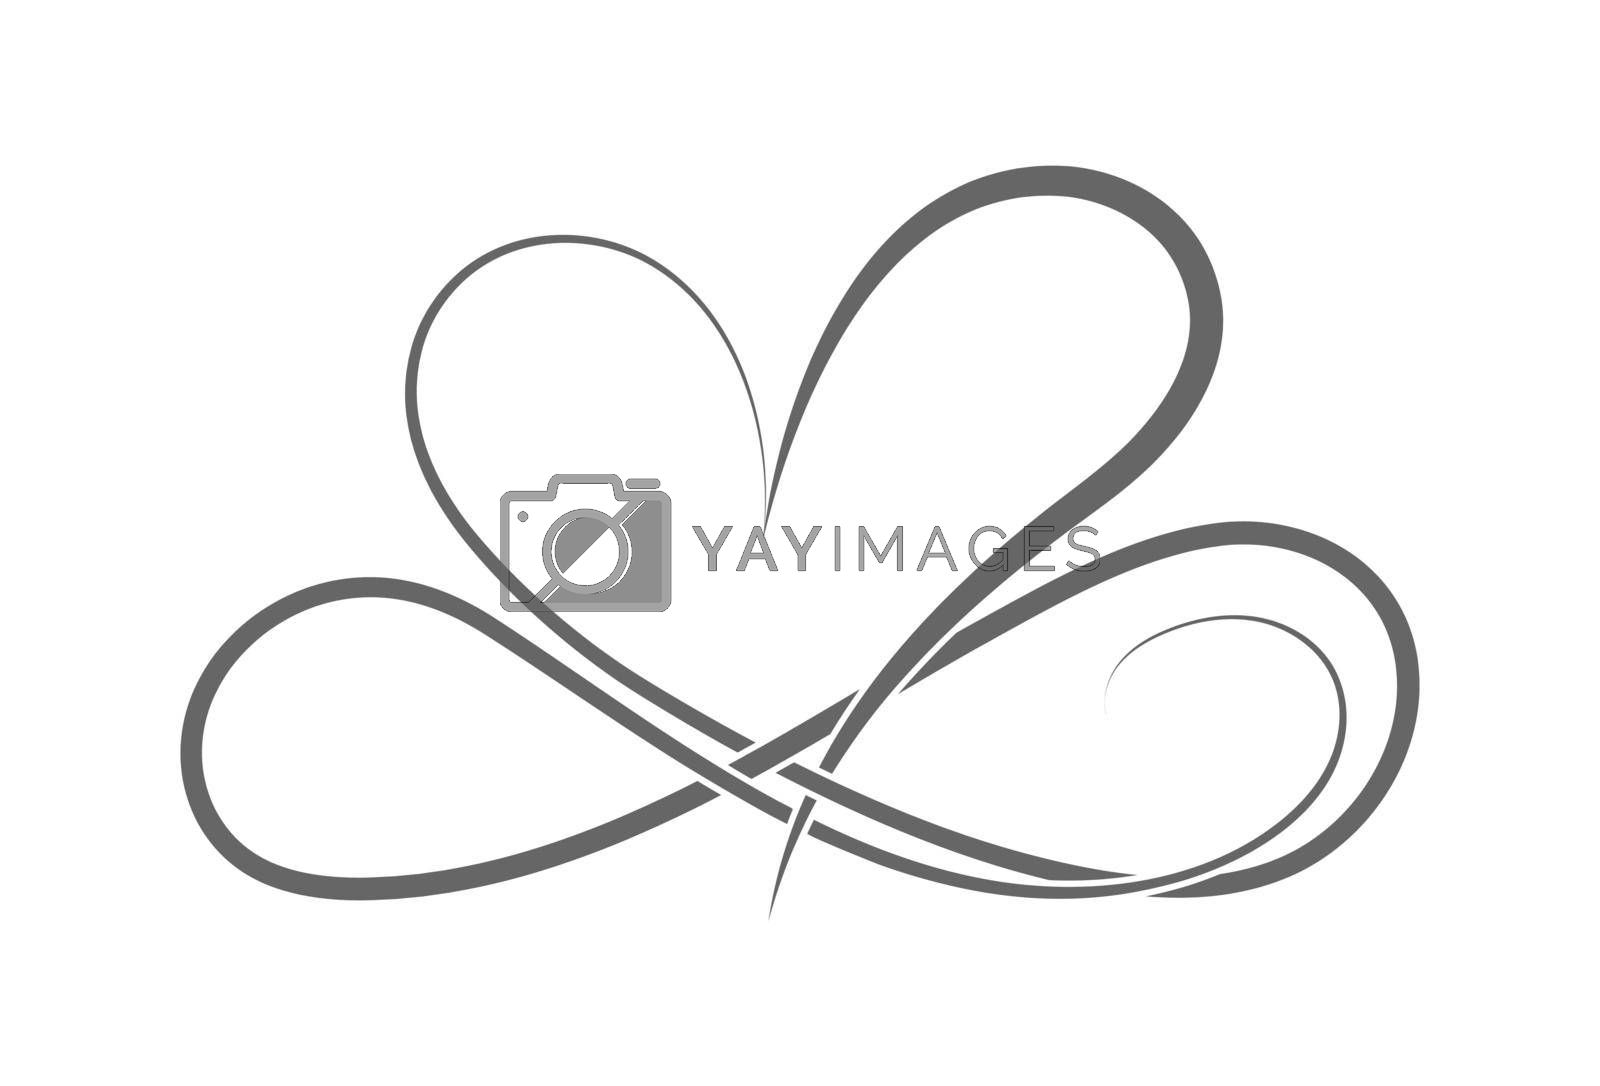 Royalty free image of symbol of eternal love. The heart and the infinity sign. Calligraphy illustration for creative design of love declaration, Valentine's day, wedding by Grommik